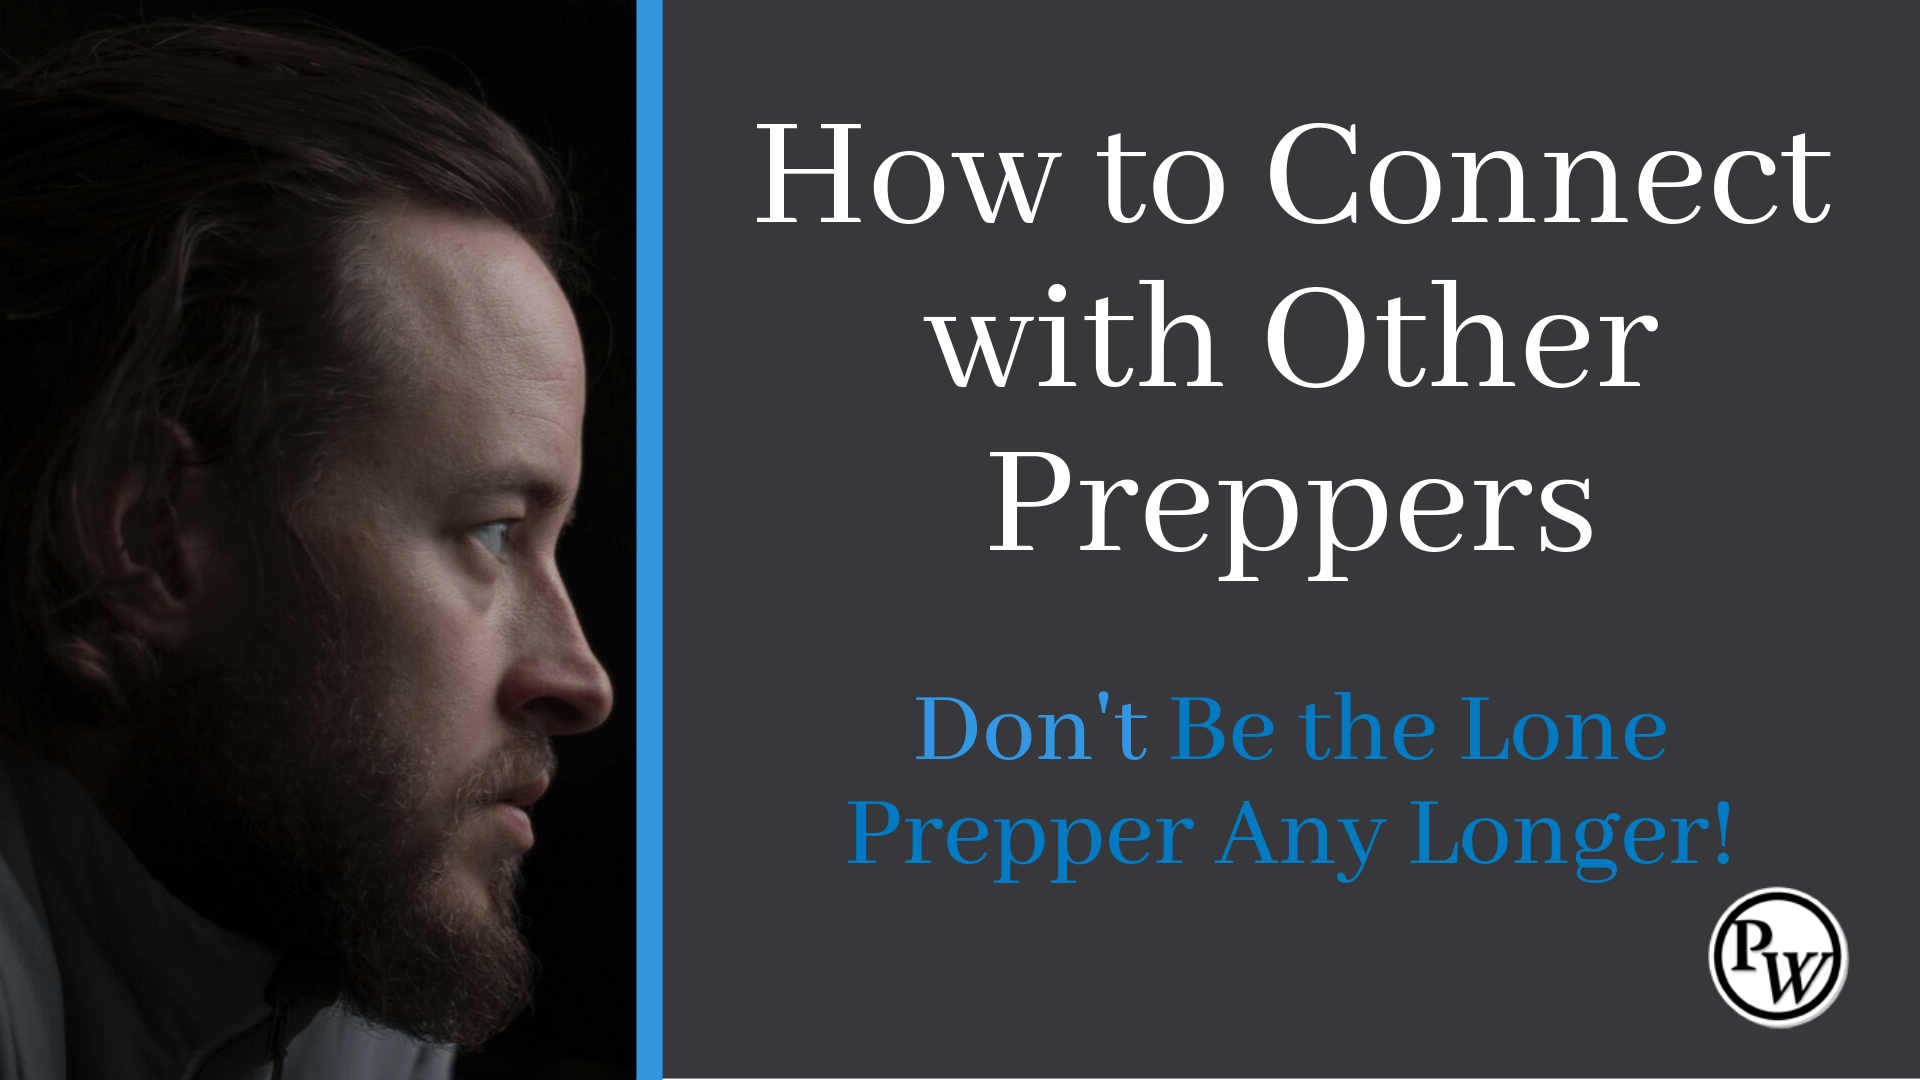 How to Connect with Other Preppers